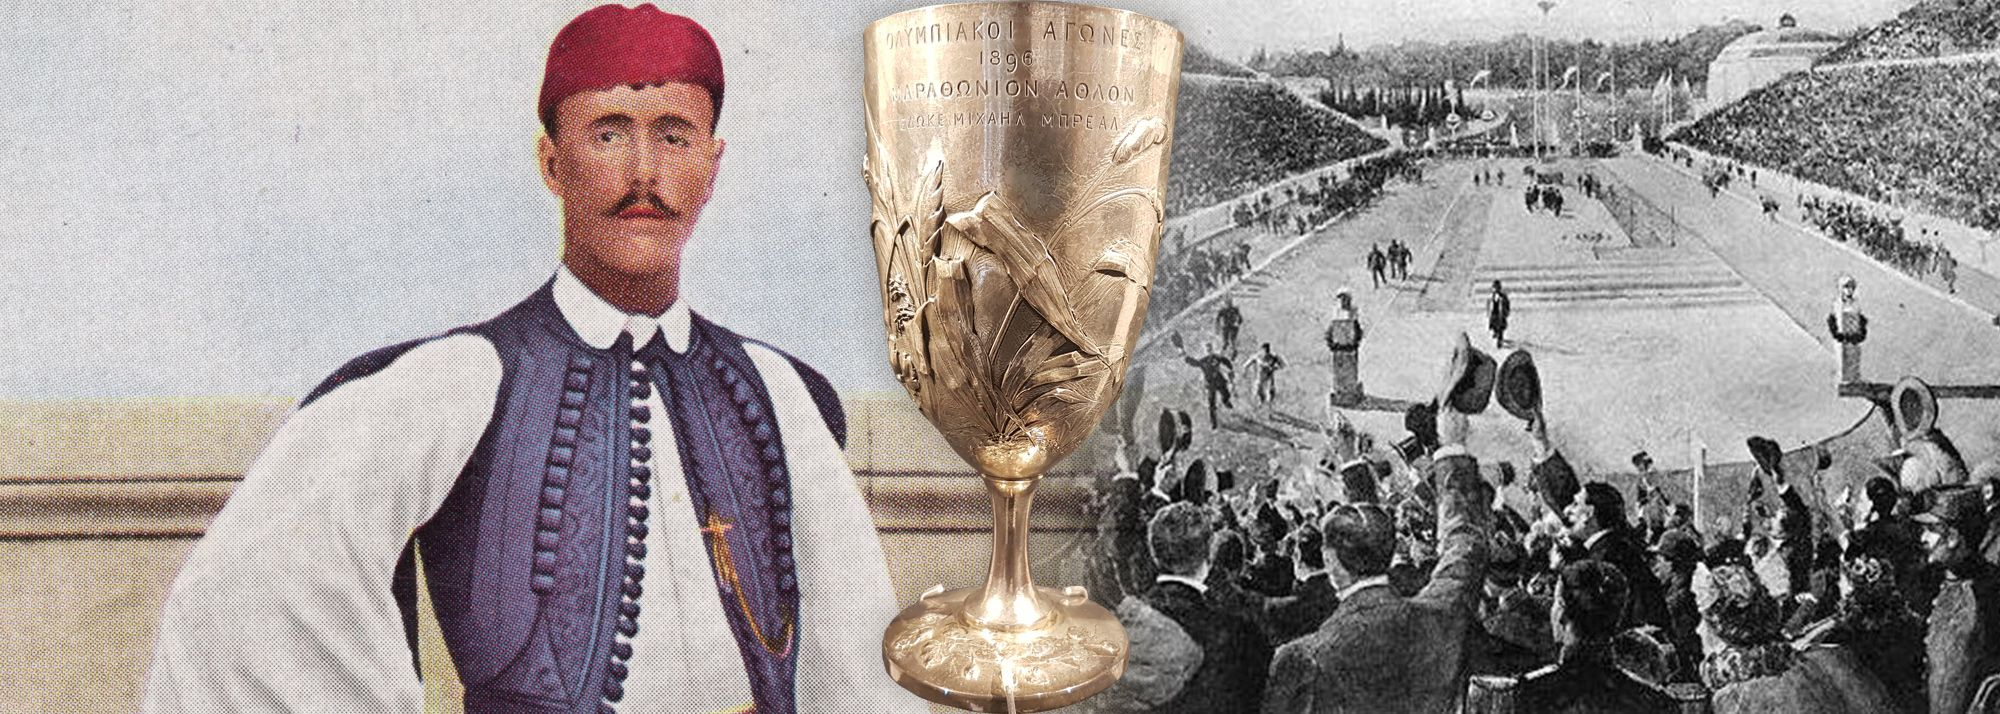 On 10 April 1896, Spiridon Louis of Greece won the first ever marathon at an Olympic Games, ancient or modern